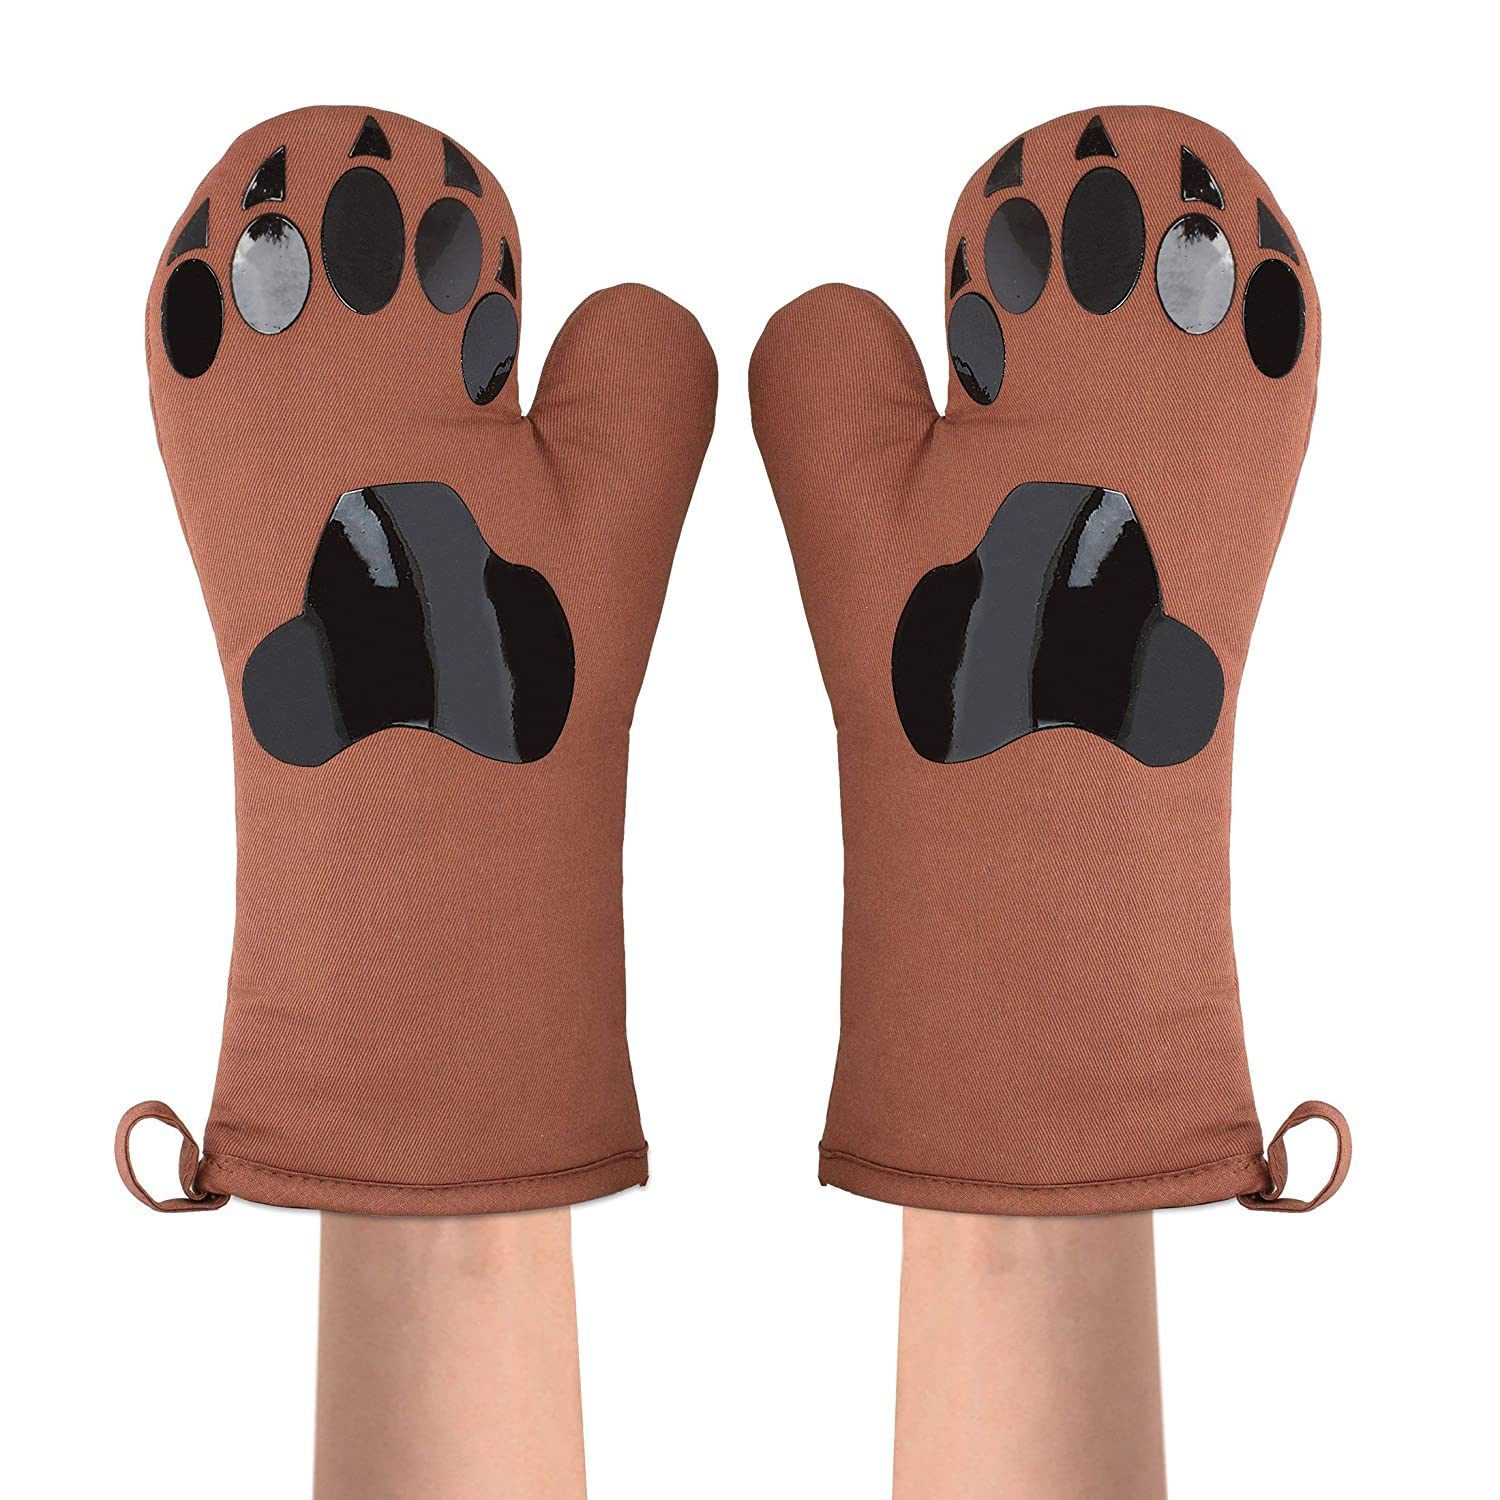 Emma Cassidy Oven Mitts Bear Paws - Set of 2 with Pot Holder - Silicone Pads on Brown Cotton Fabric - Funny Set - Easy Grip and Non-Slip for Kitchen - Gives You a Smile as You Cook